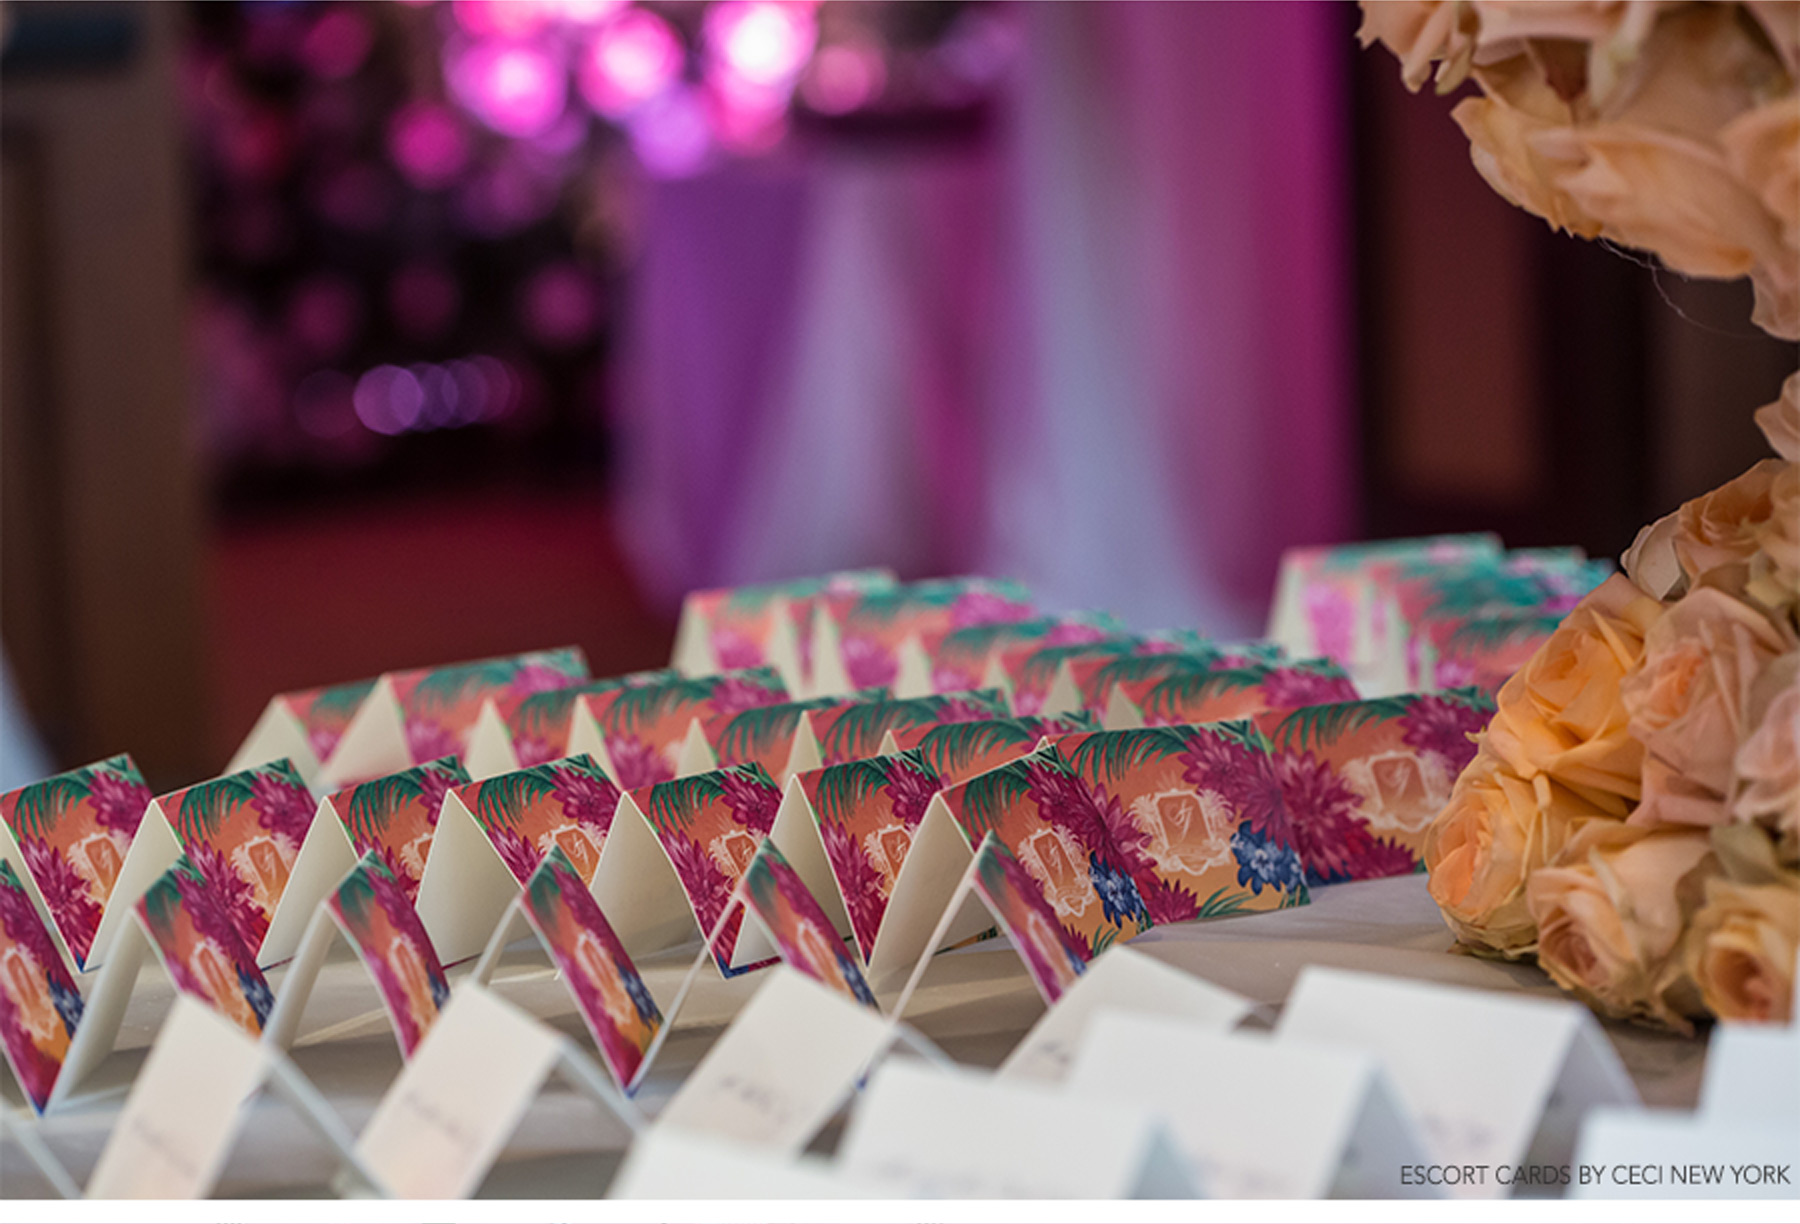 Our Muse - Sunny, Tropical Wedding in Florida - Be inspired by Sally & Javier's vibrant, tropical wedding in Florida - tropical wedding, wedding inspiration, colorful, florida wedding, ceci new york, escort cards, table signs, watercolor, colorful, palm trees, flowers, centerpieces, cake, pink, purple, bride, groom, custom